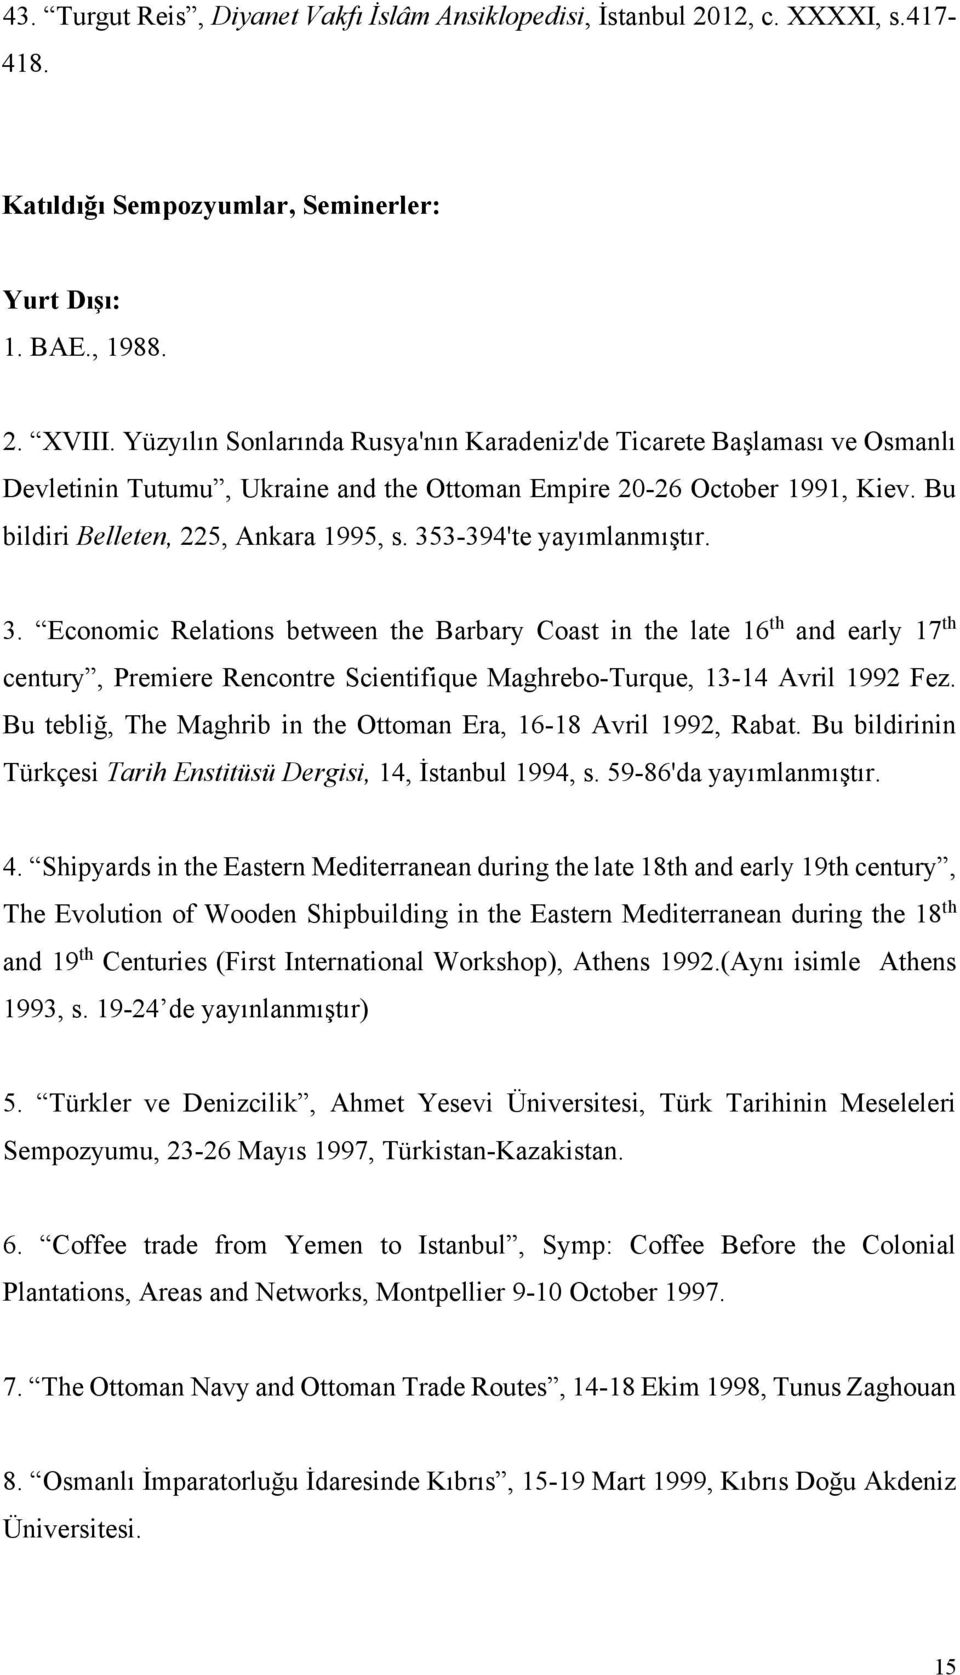 353-394'te yayımlanmıştır. 3. Economic Relations between the Barbary Coast in the late 16 th and early 17 th century, Premiere Rencontre Scientifique Maghrebo-Turque, 13-14 Avril 1992 Fez.